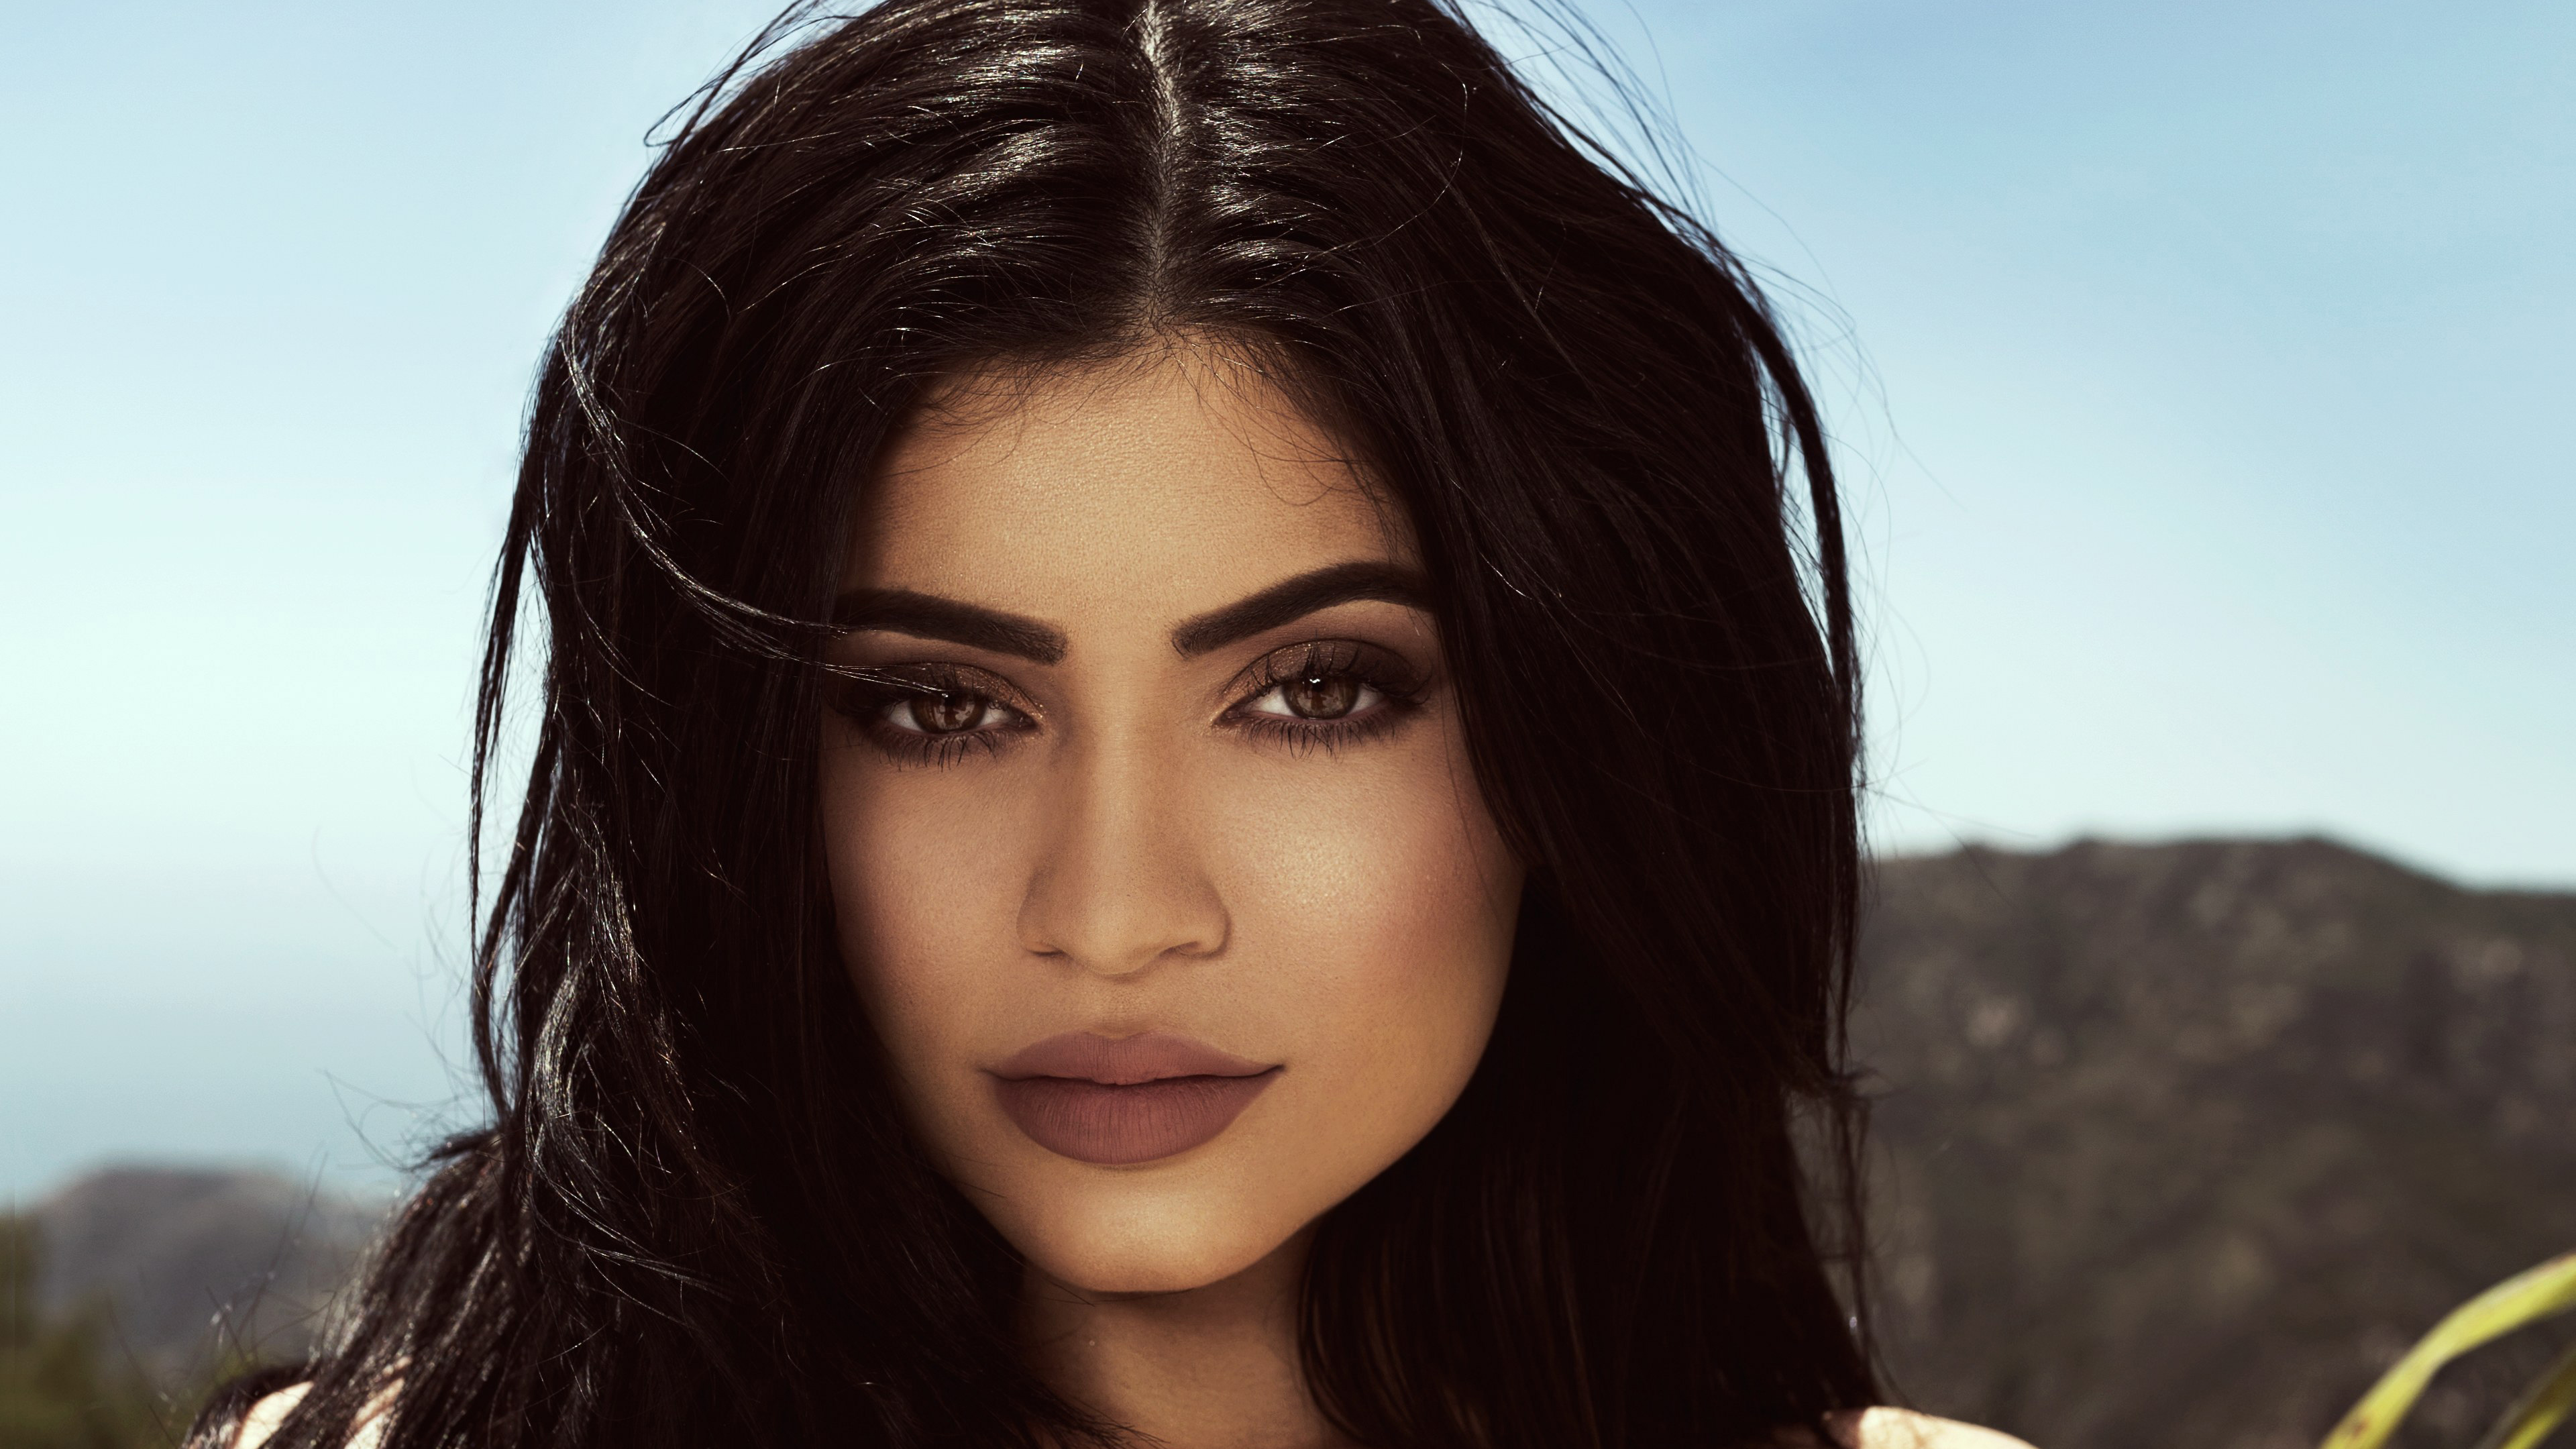 Kylie Jenner Topshop 4K Wallpapers